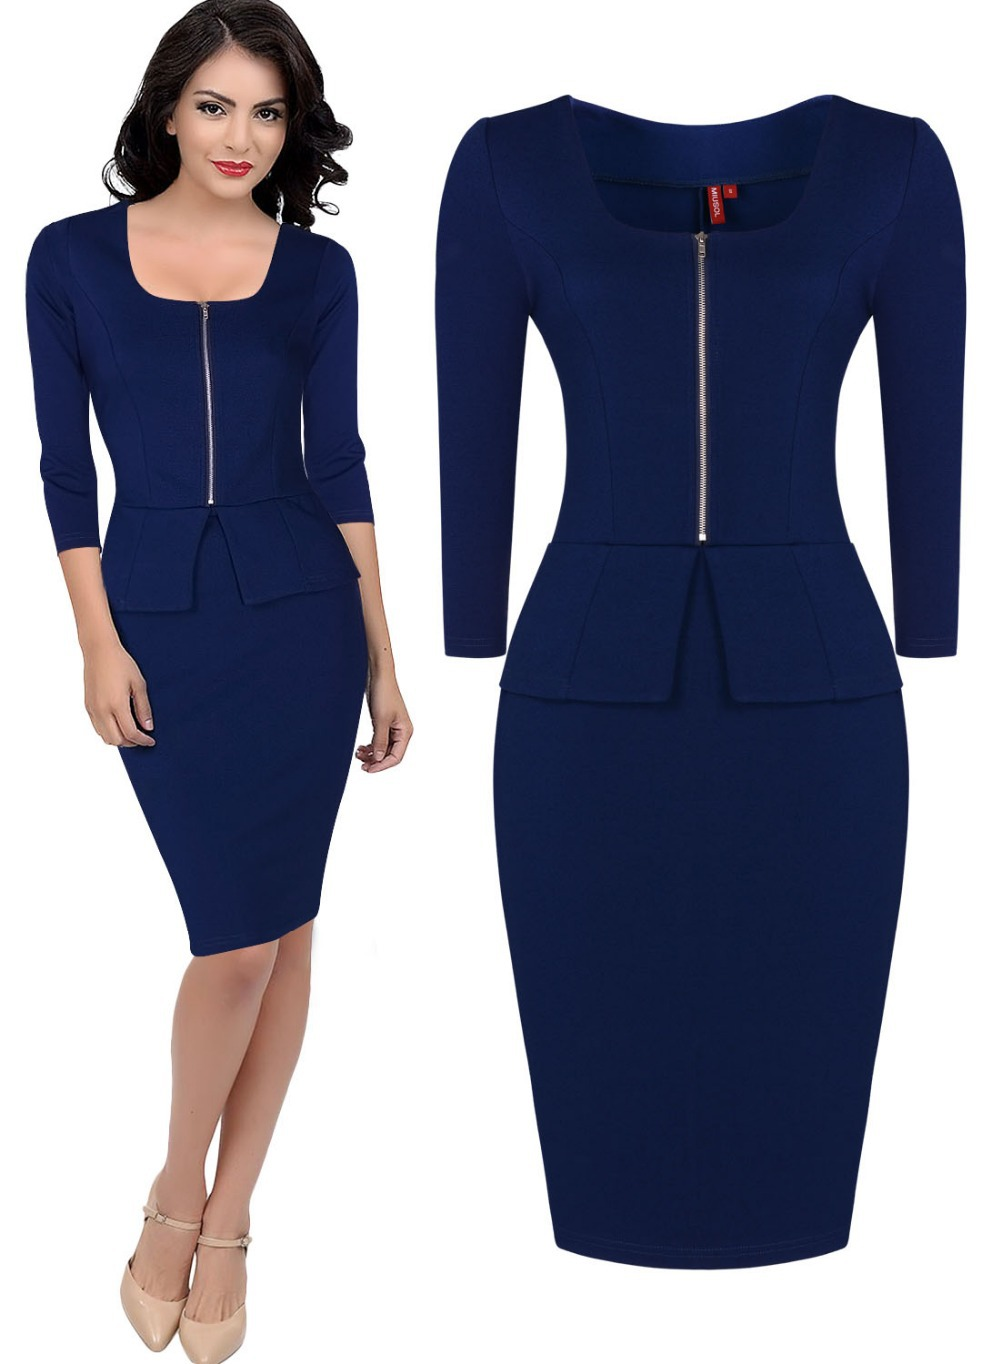 Find a great selection of work styles for women at oraplanrans.tk Shop for business casual, women's suits, professional & office clothing, shoes & accessories. Totally free shipping & returns.